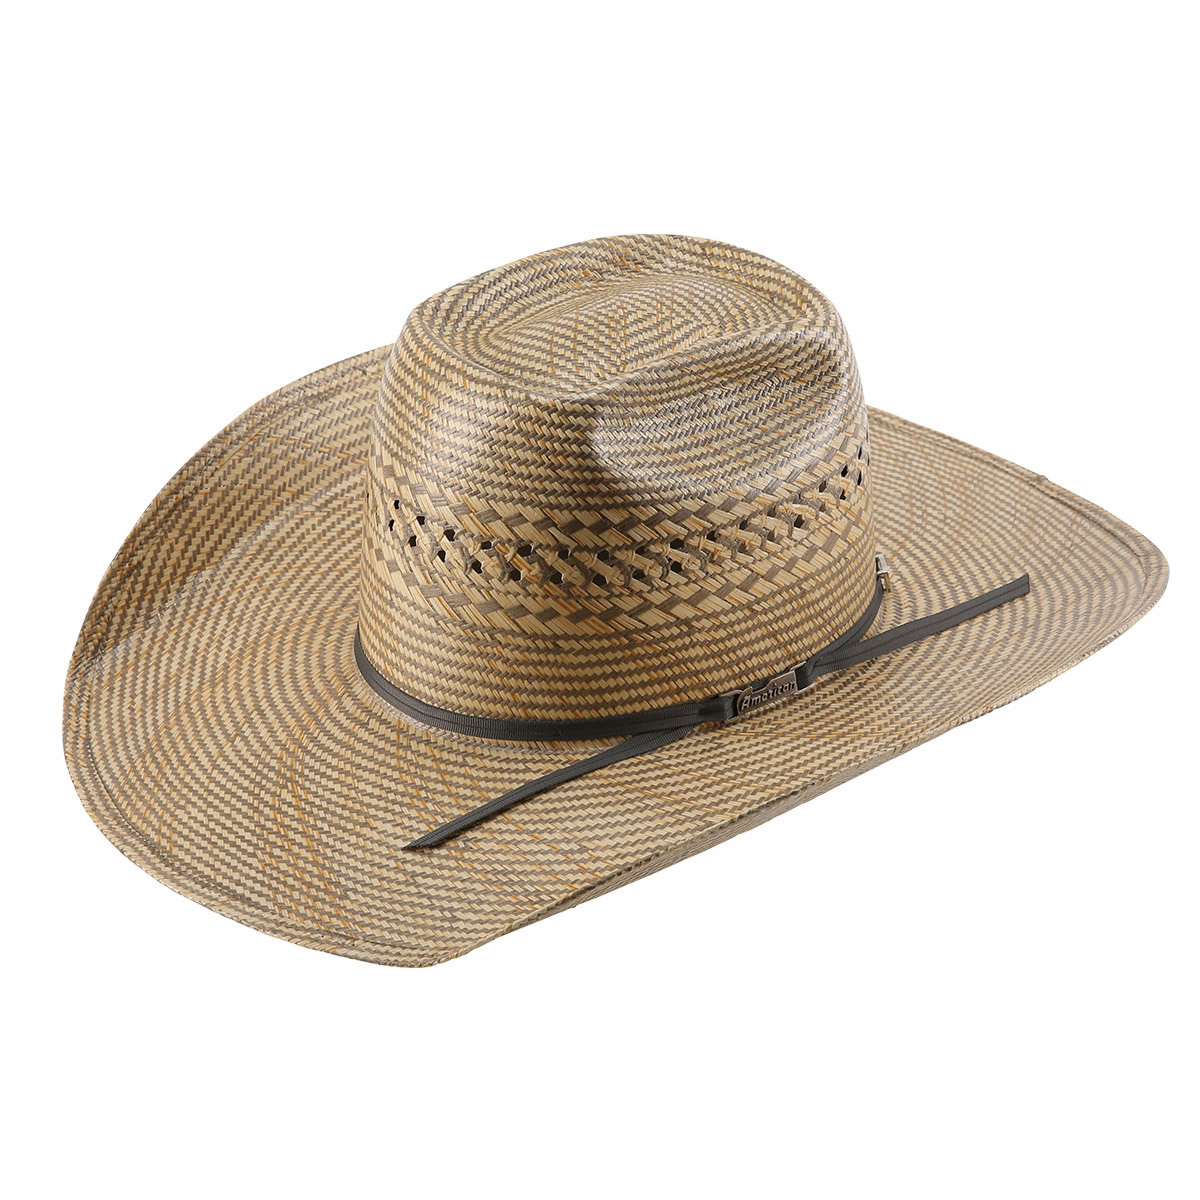 Pungo Ridge American Hat Co 20 Fancy Vent Two Tone Straw Hat